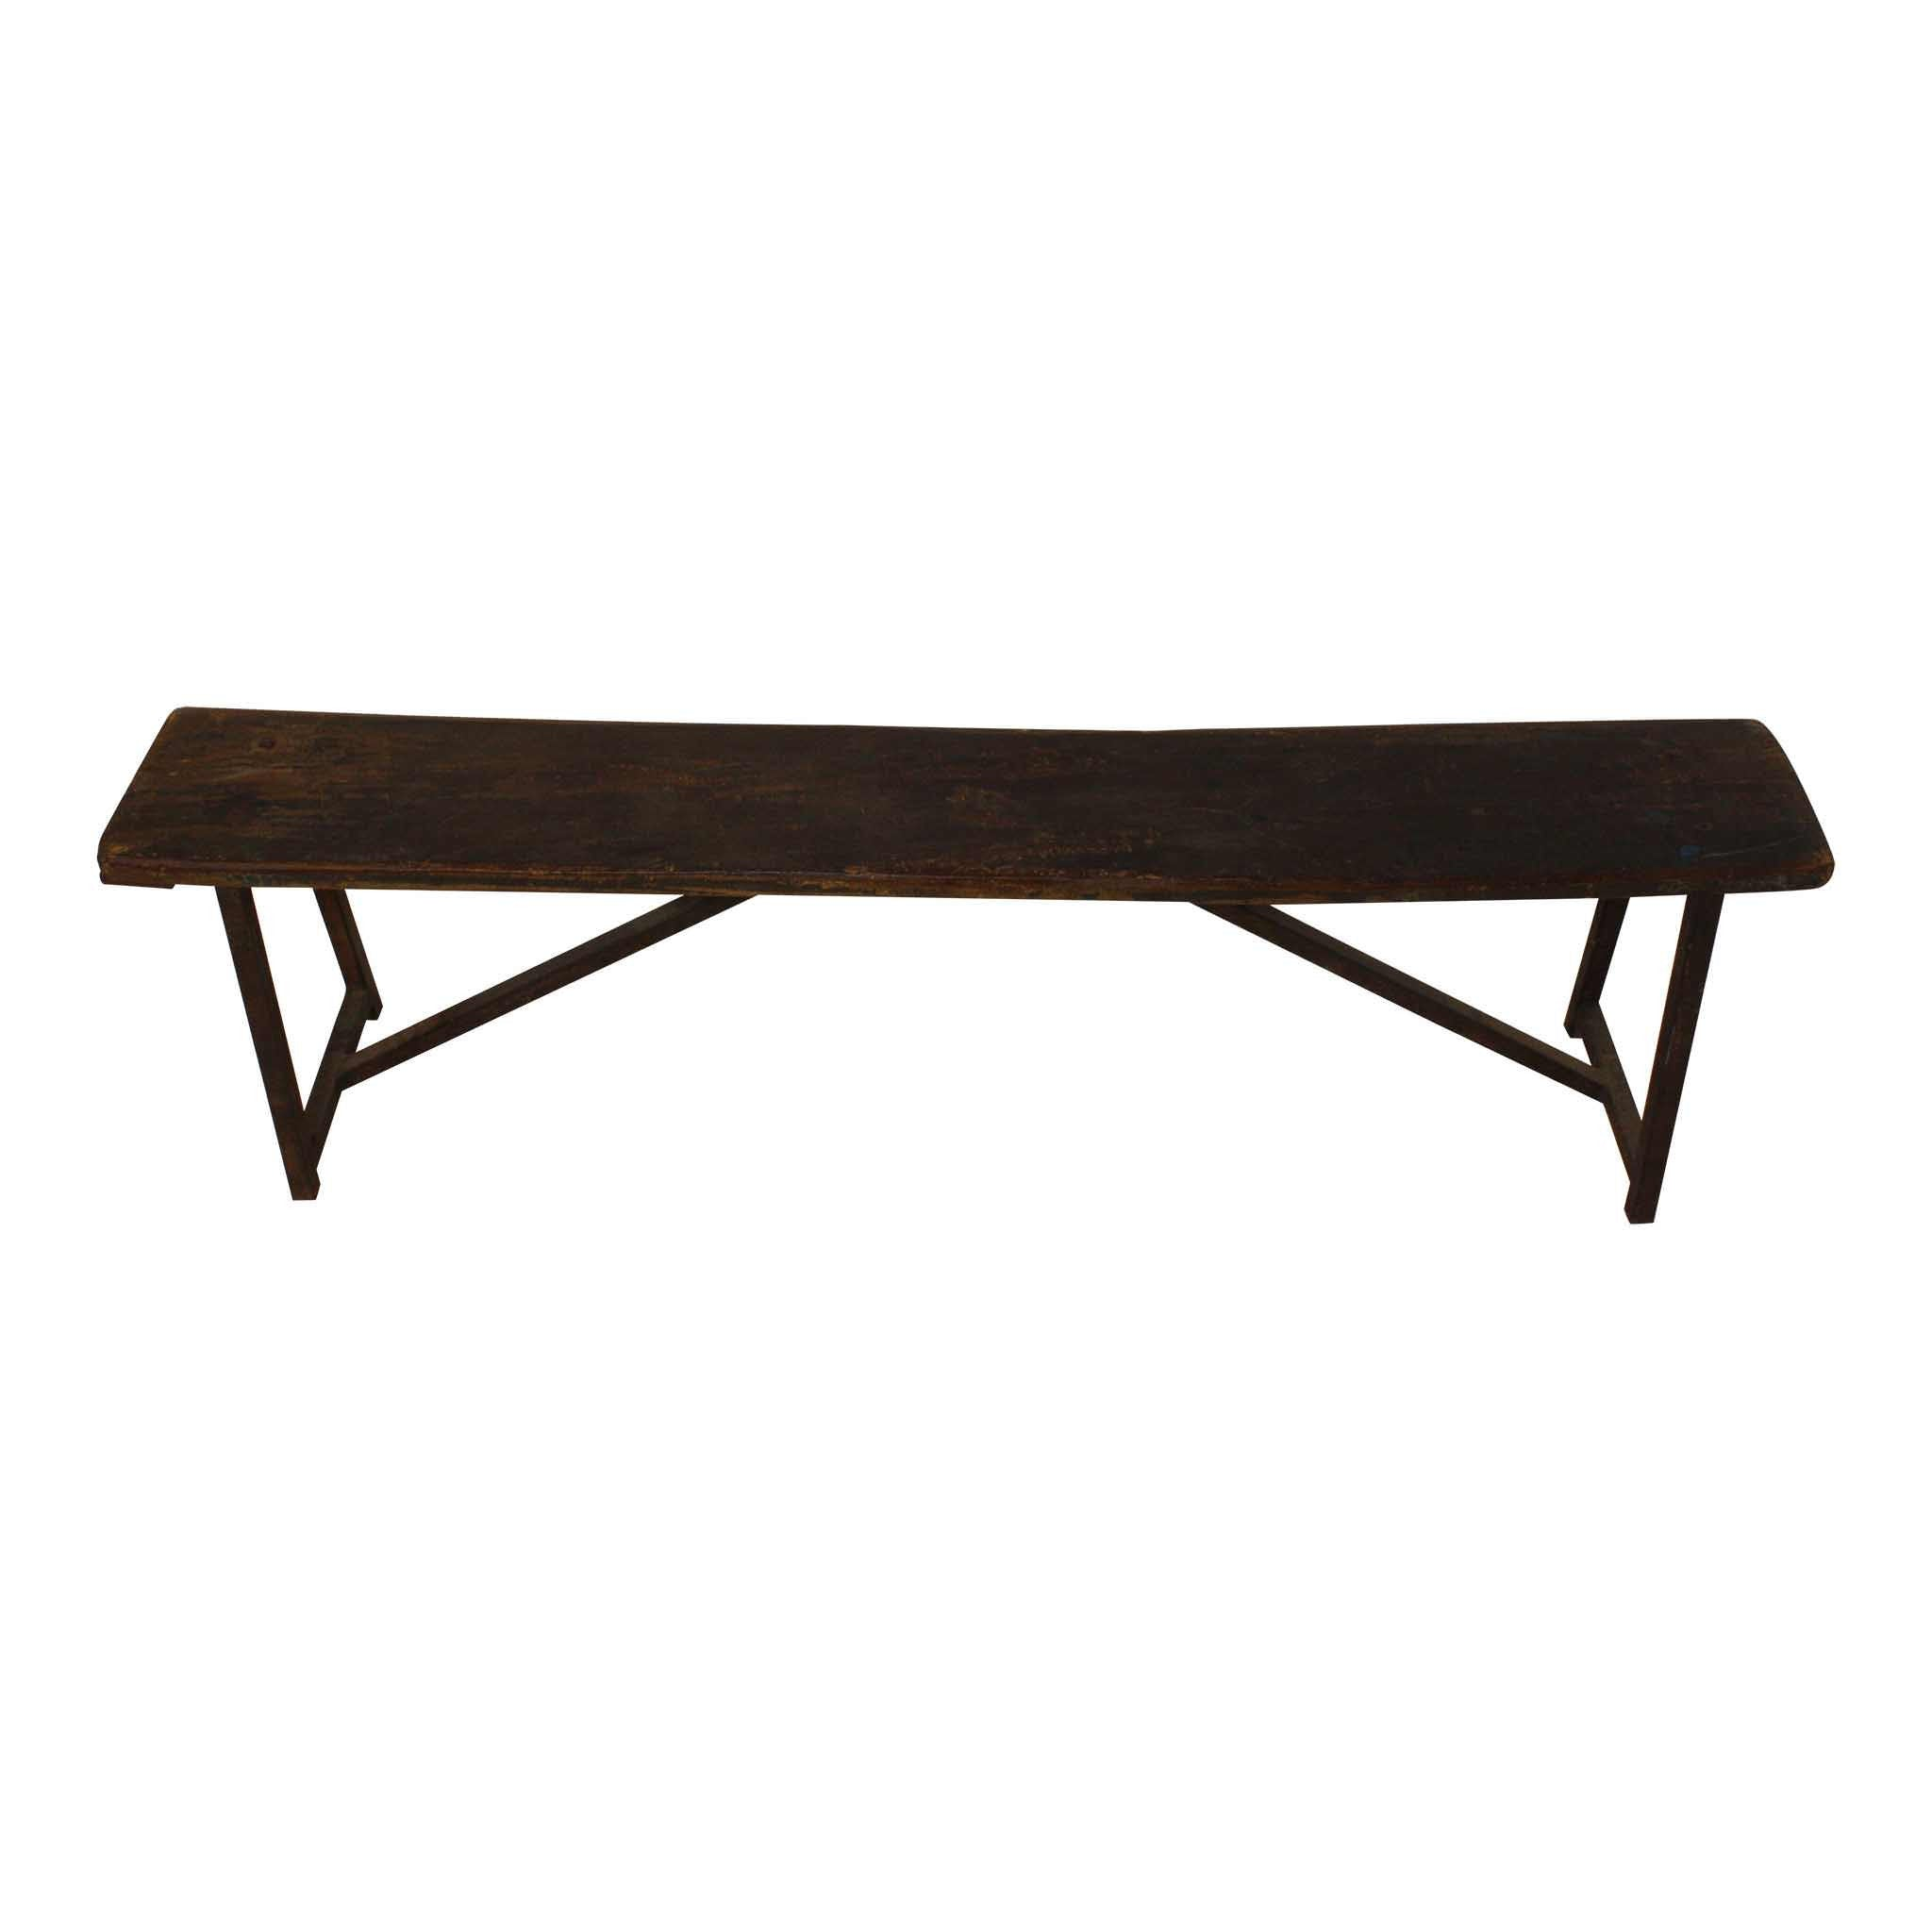 Industrial Wood Bench with Steel Legs